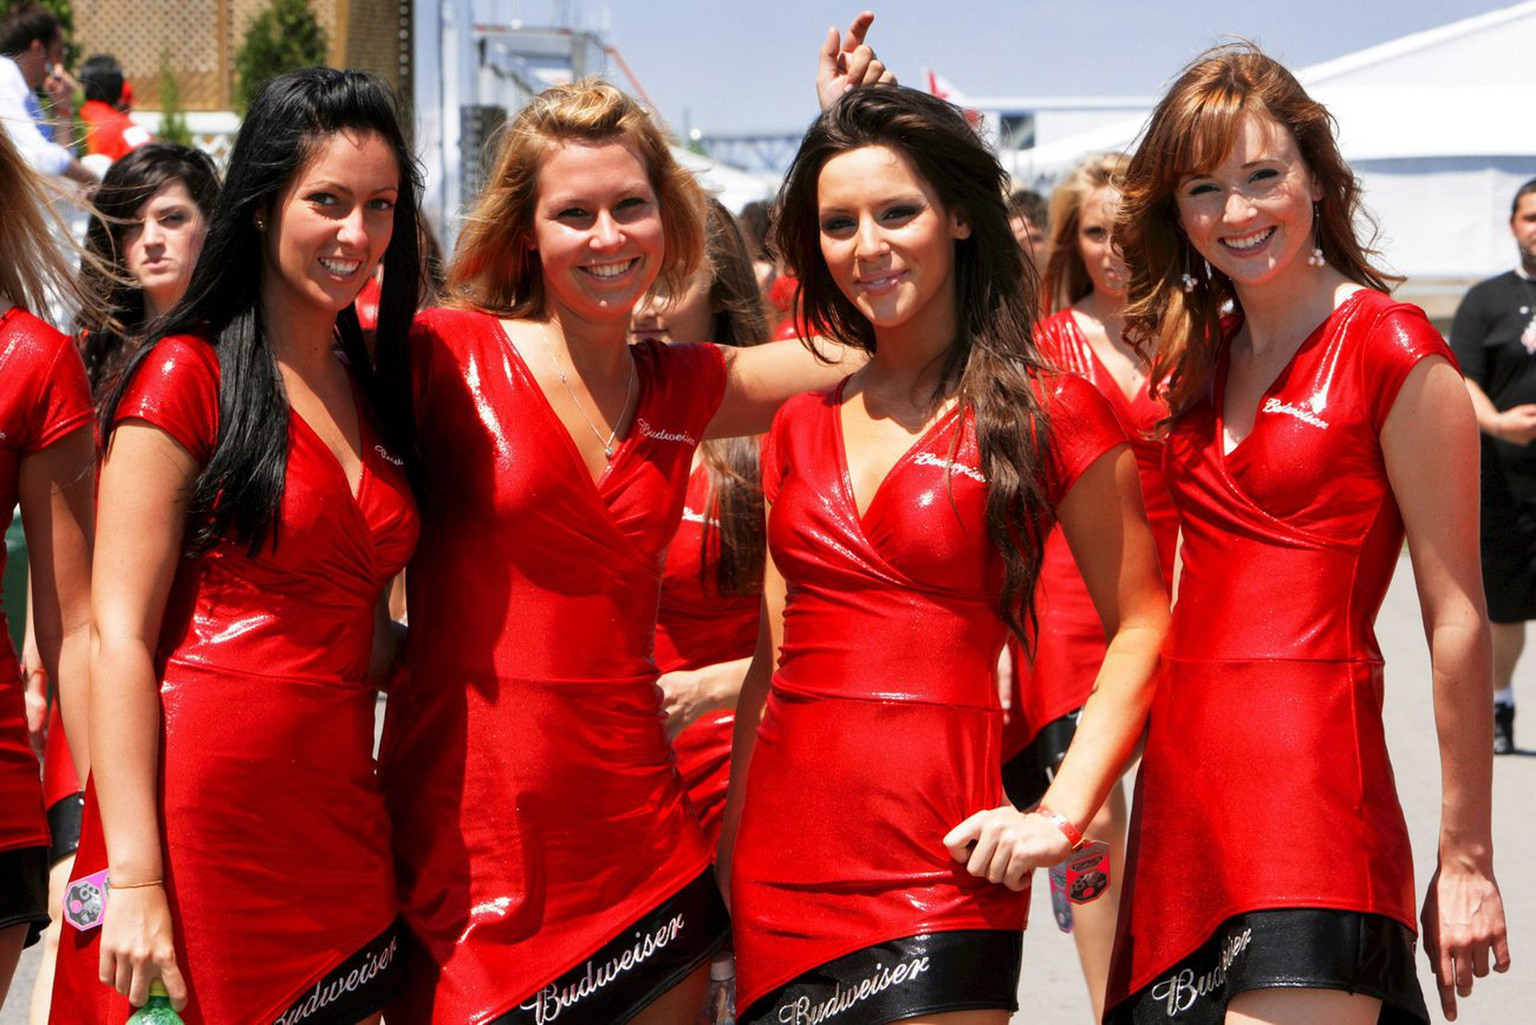 epa01373952 Grid girls pose before going to the starting grid prior to the Grand Prix of Canada, 08 June 2008 in Montreal, Canada.  EPA/JENS BUETTNER